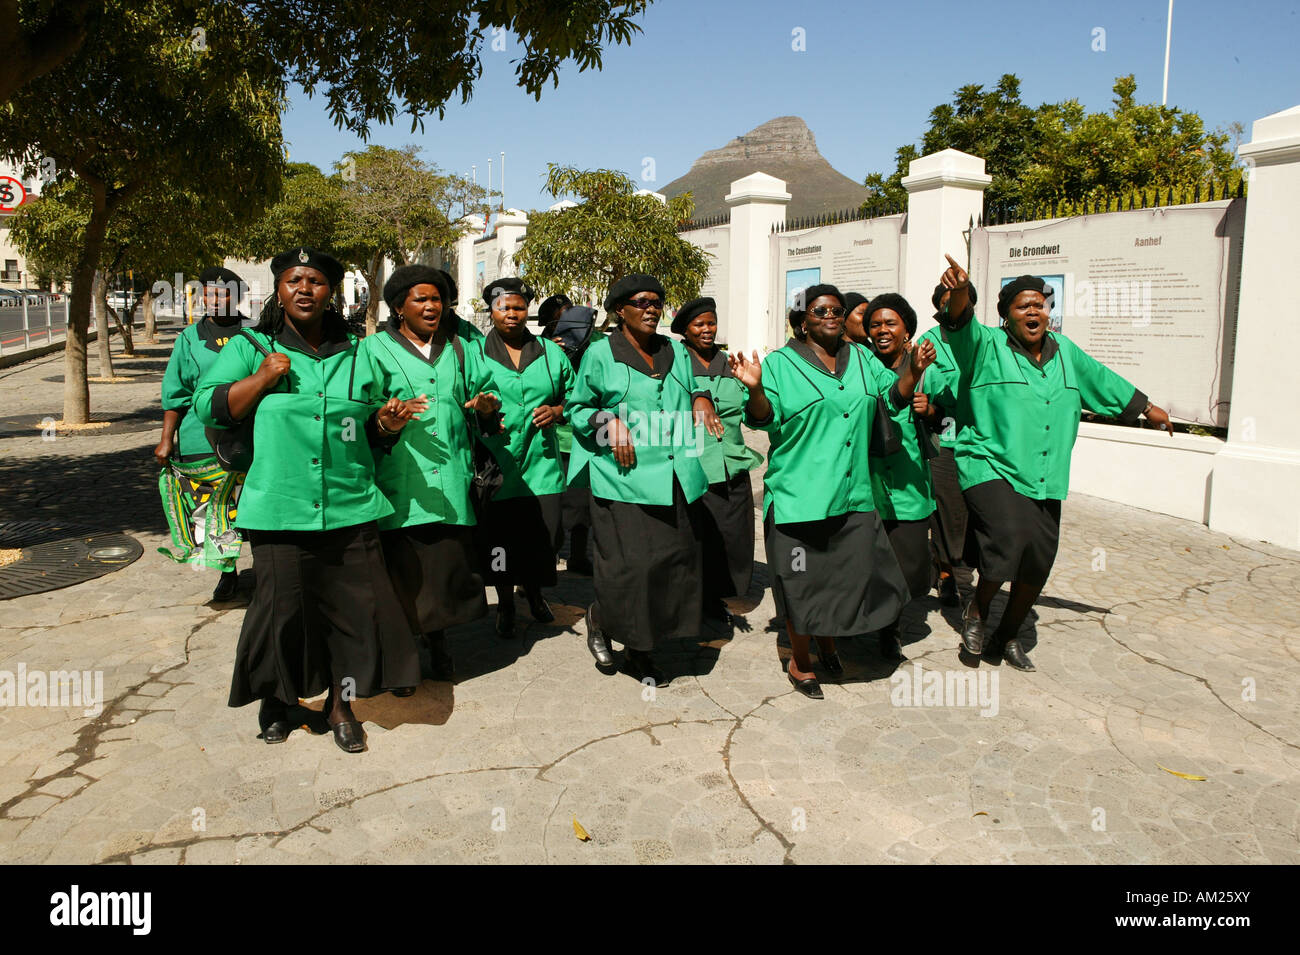 ANC Women´s League in front of the government building in Cape Town, South Africa - Stock Image